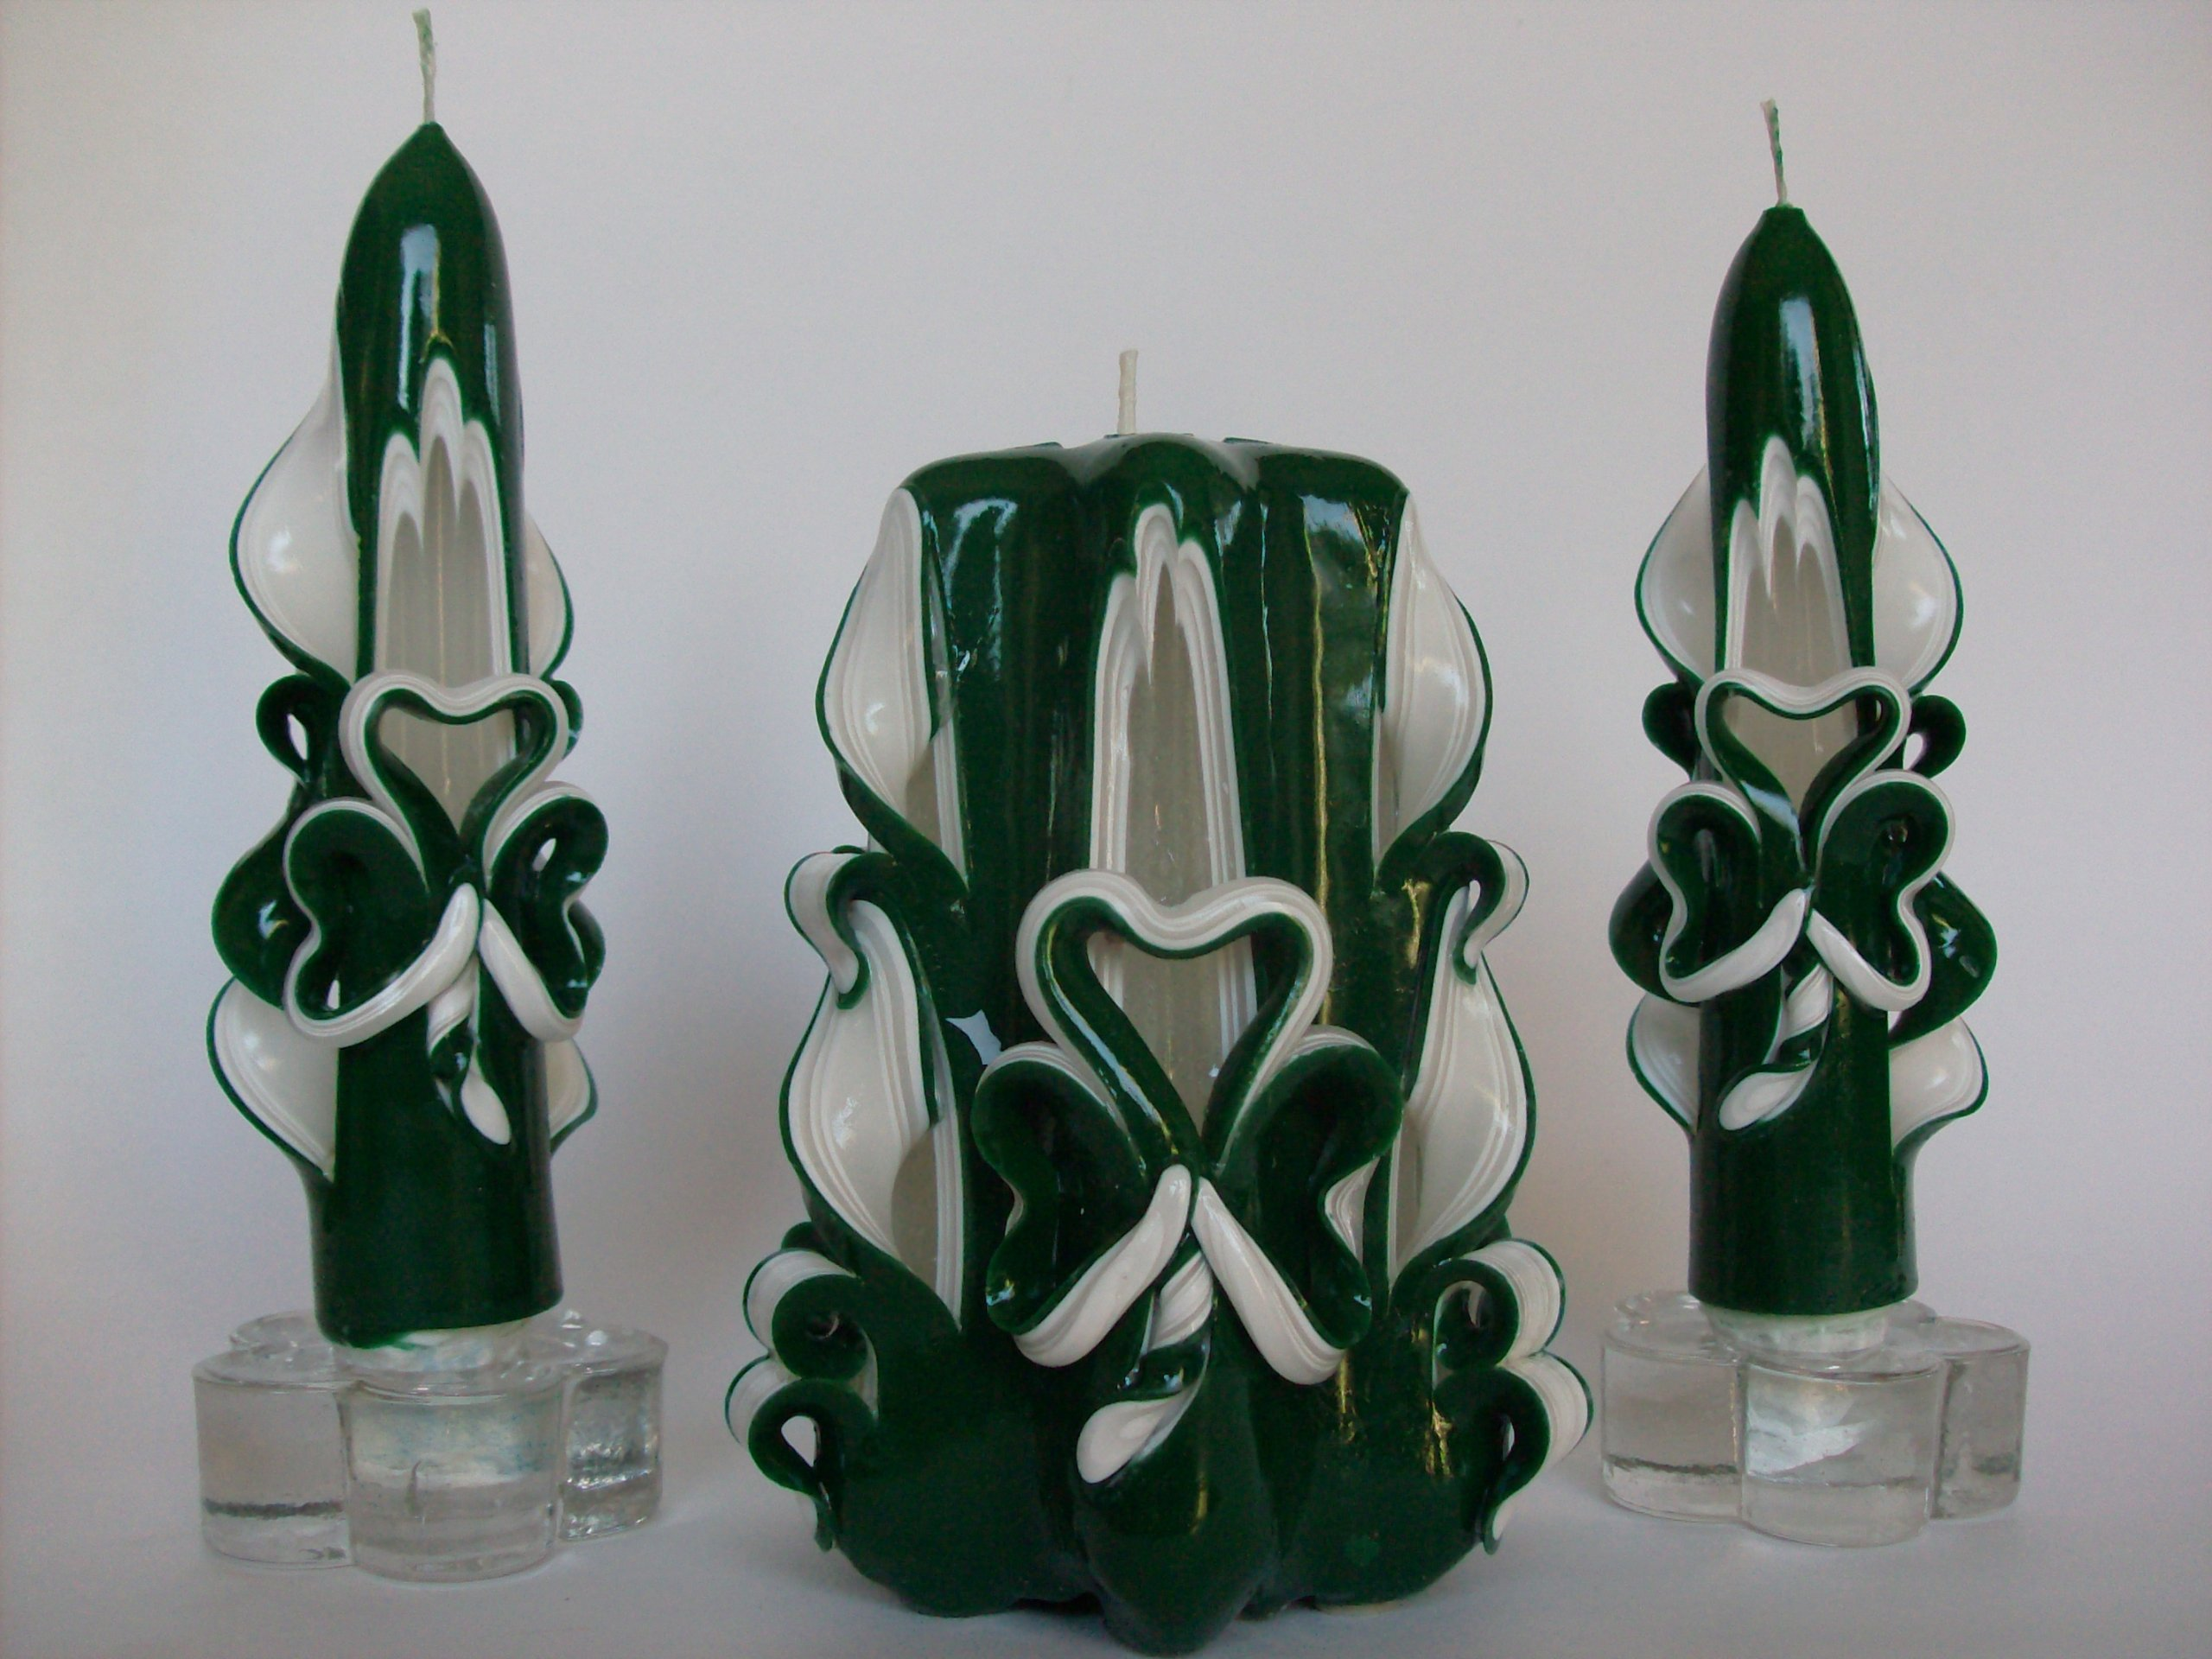 Zee Candles St. Patrick's Day Shamrock Candle Set (Emerald Green)